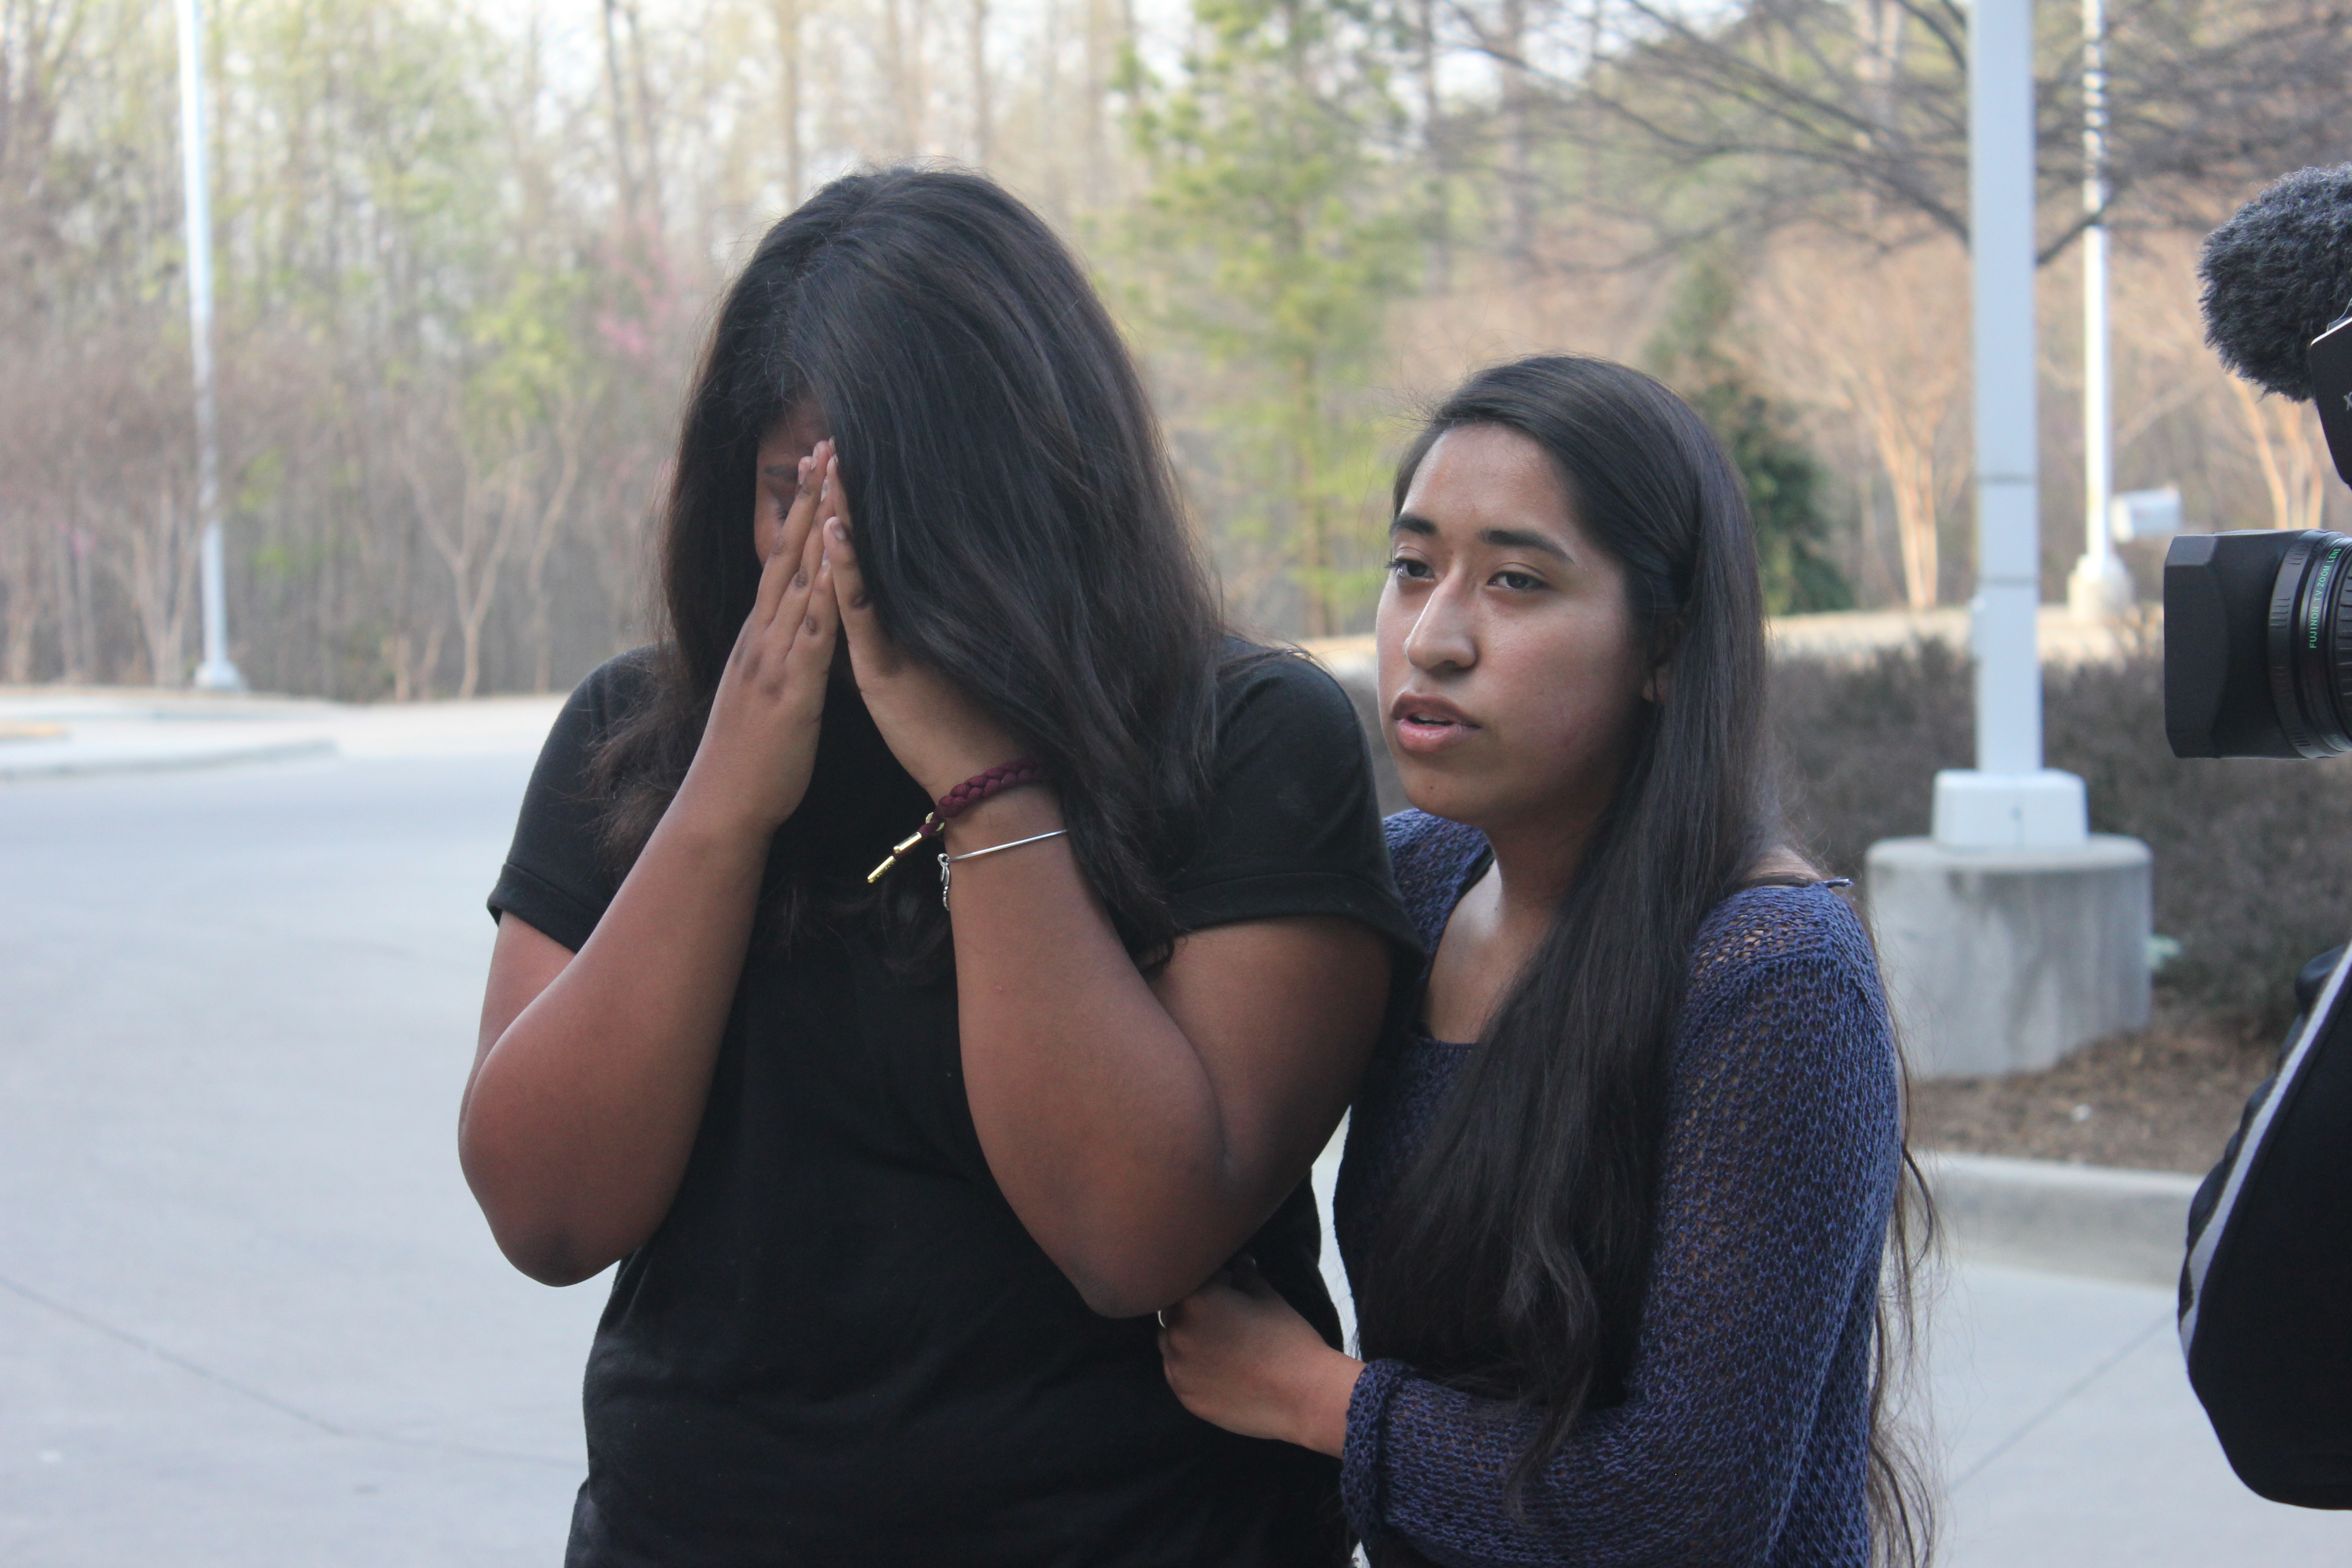 Edith Galvan, an undocumented immigrant and DACA recipient, offers support to Alisha Marcial during a vigil in honor of Marcial's father. The father of seven U.S.-born children is detained at a county jail in Raleigh, North Carolina. (Photo: A. Bar...